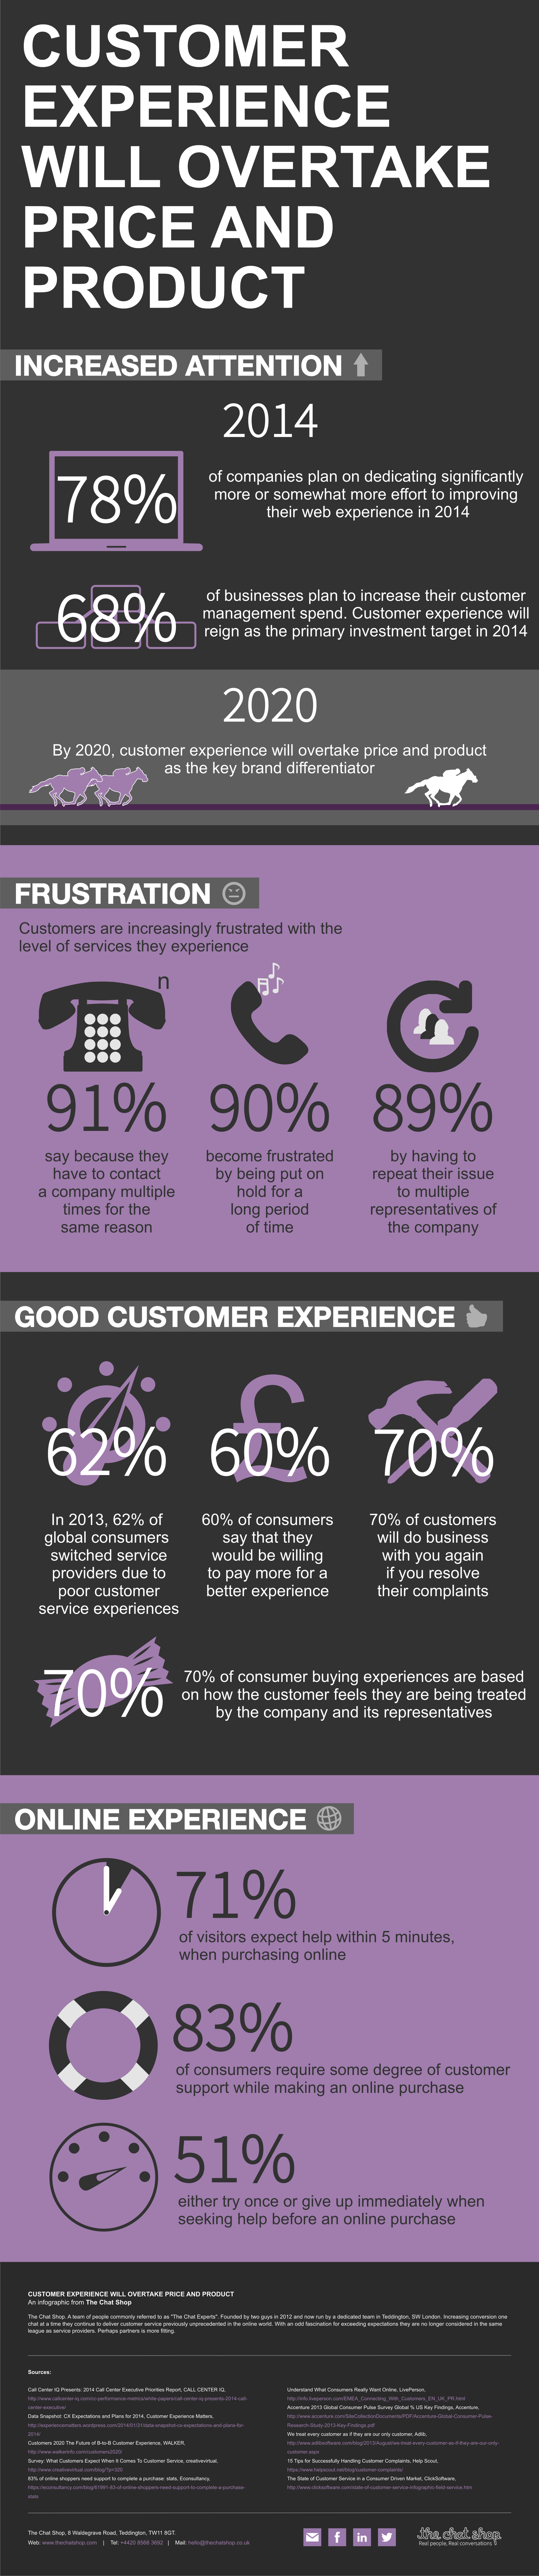 Why Customer Experience Will Overtake Price And Product